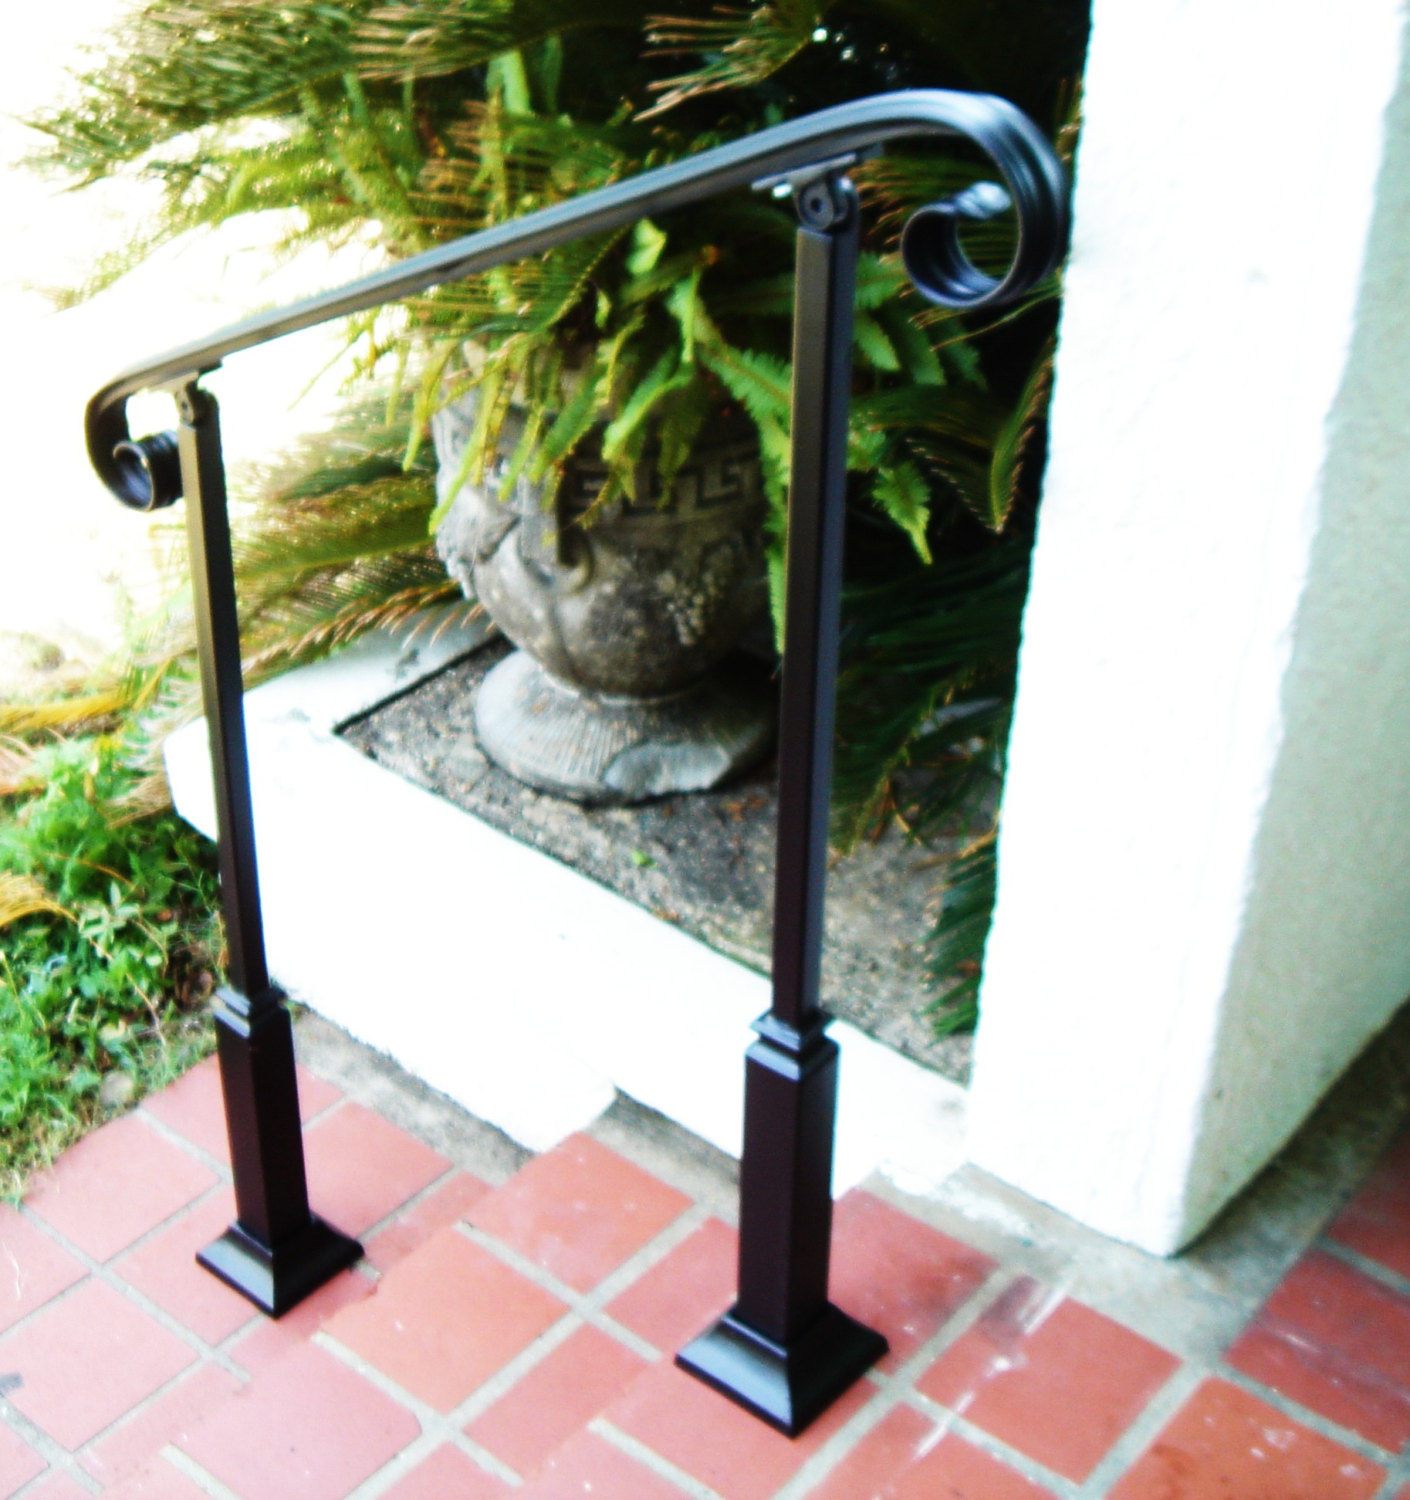 5 ft wrought iron stair hand rail 2 decorative posts - Exterior wrought iron handrails for steps ...